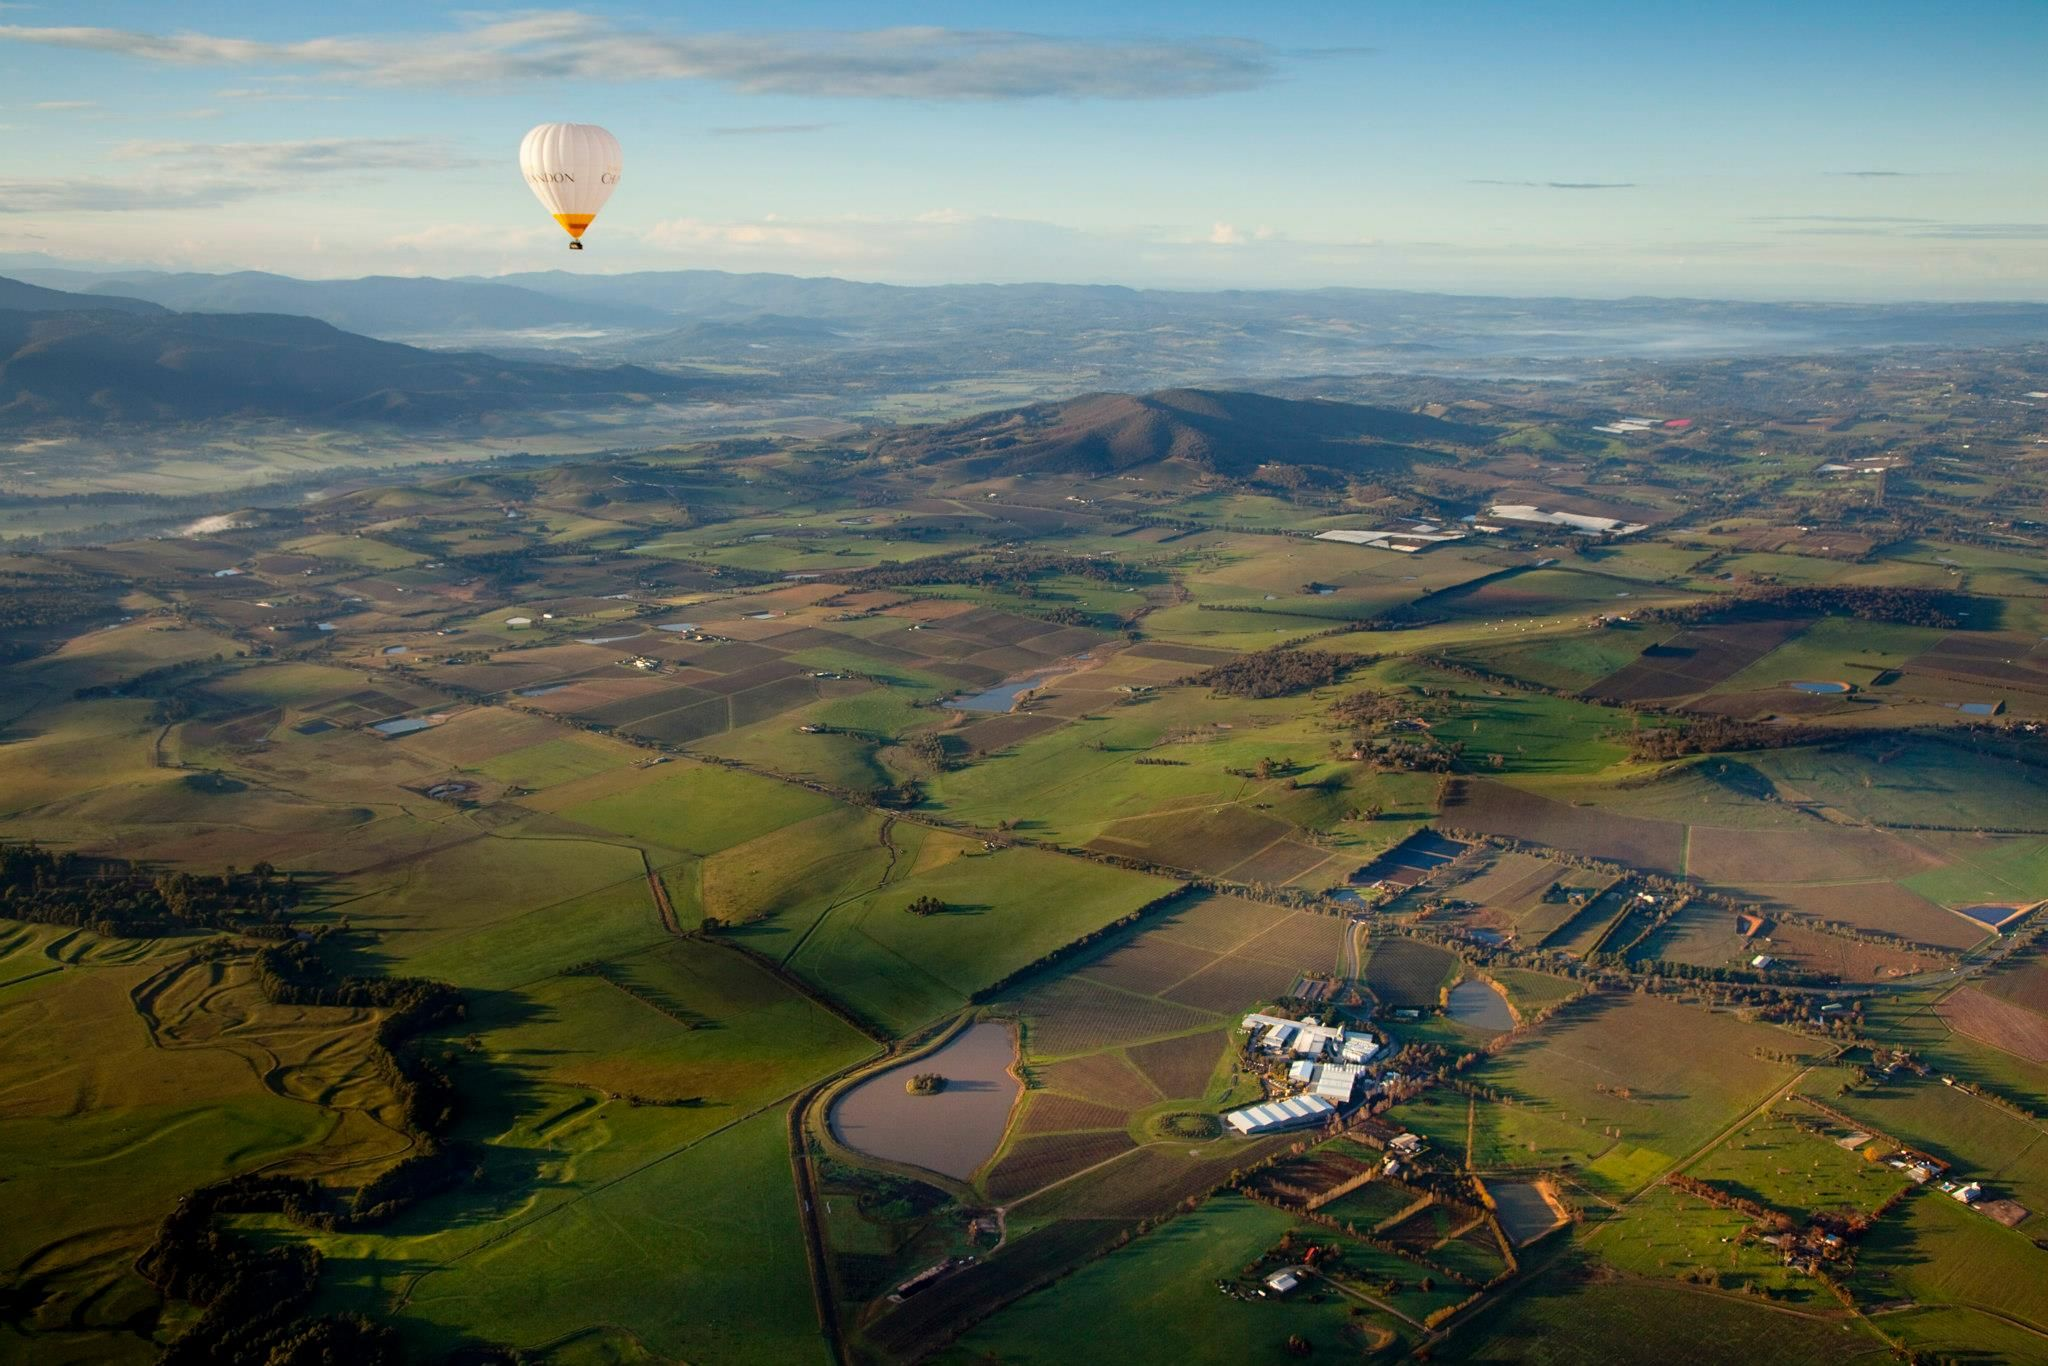 Yarra Valley Australia  City new picture : Yarra Valley, Victoria | Australia...My Home | Pinterest